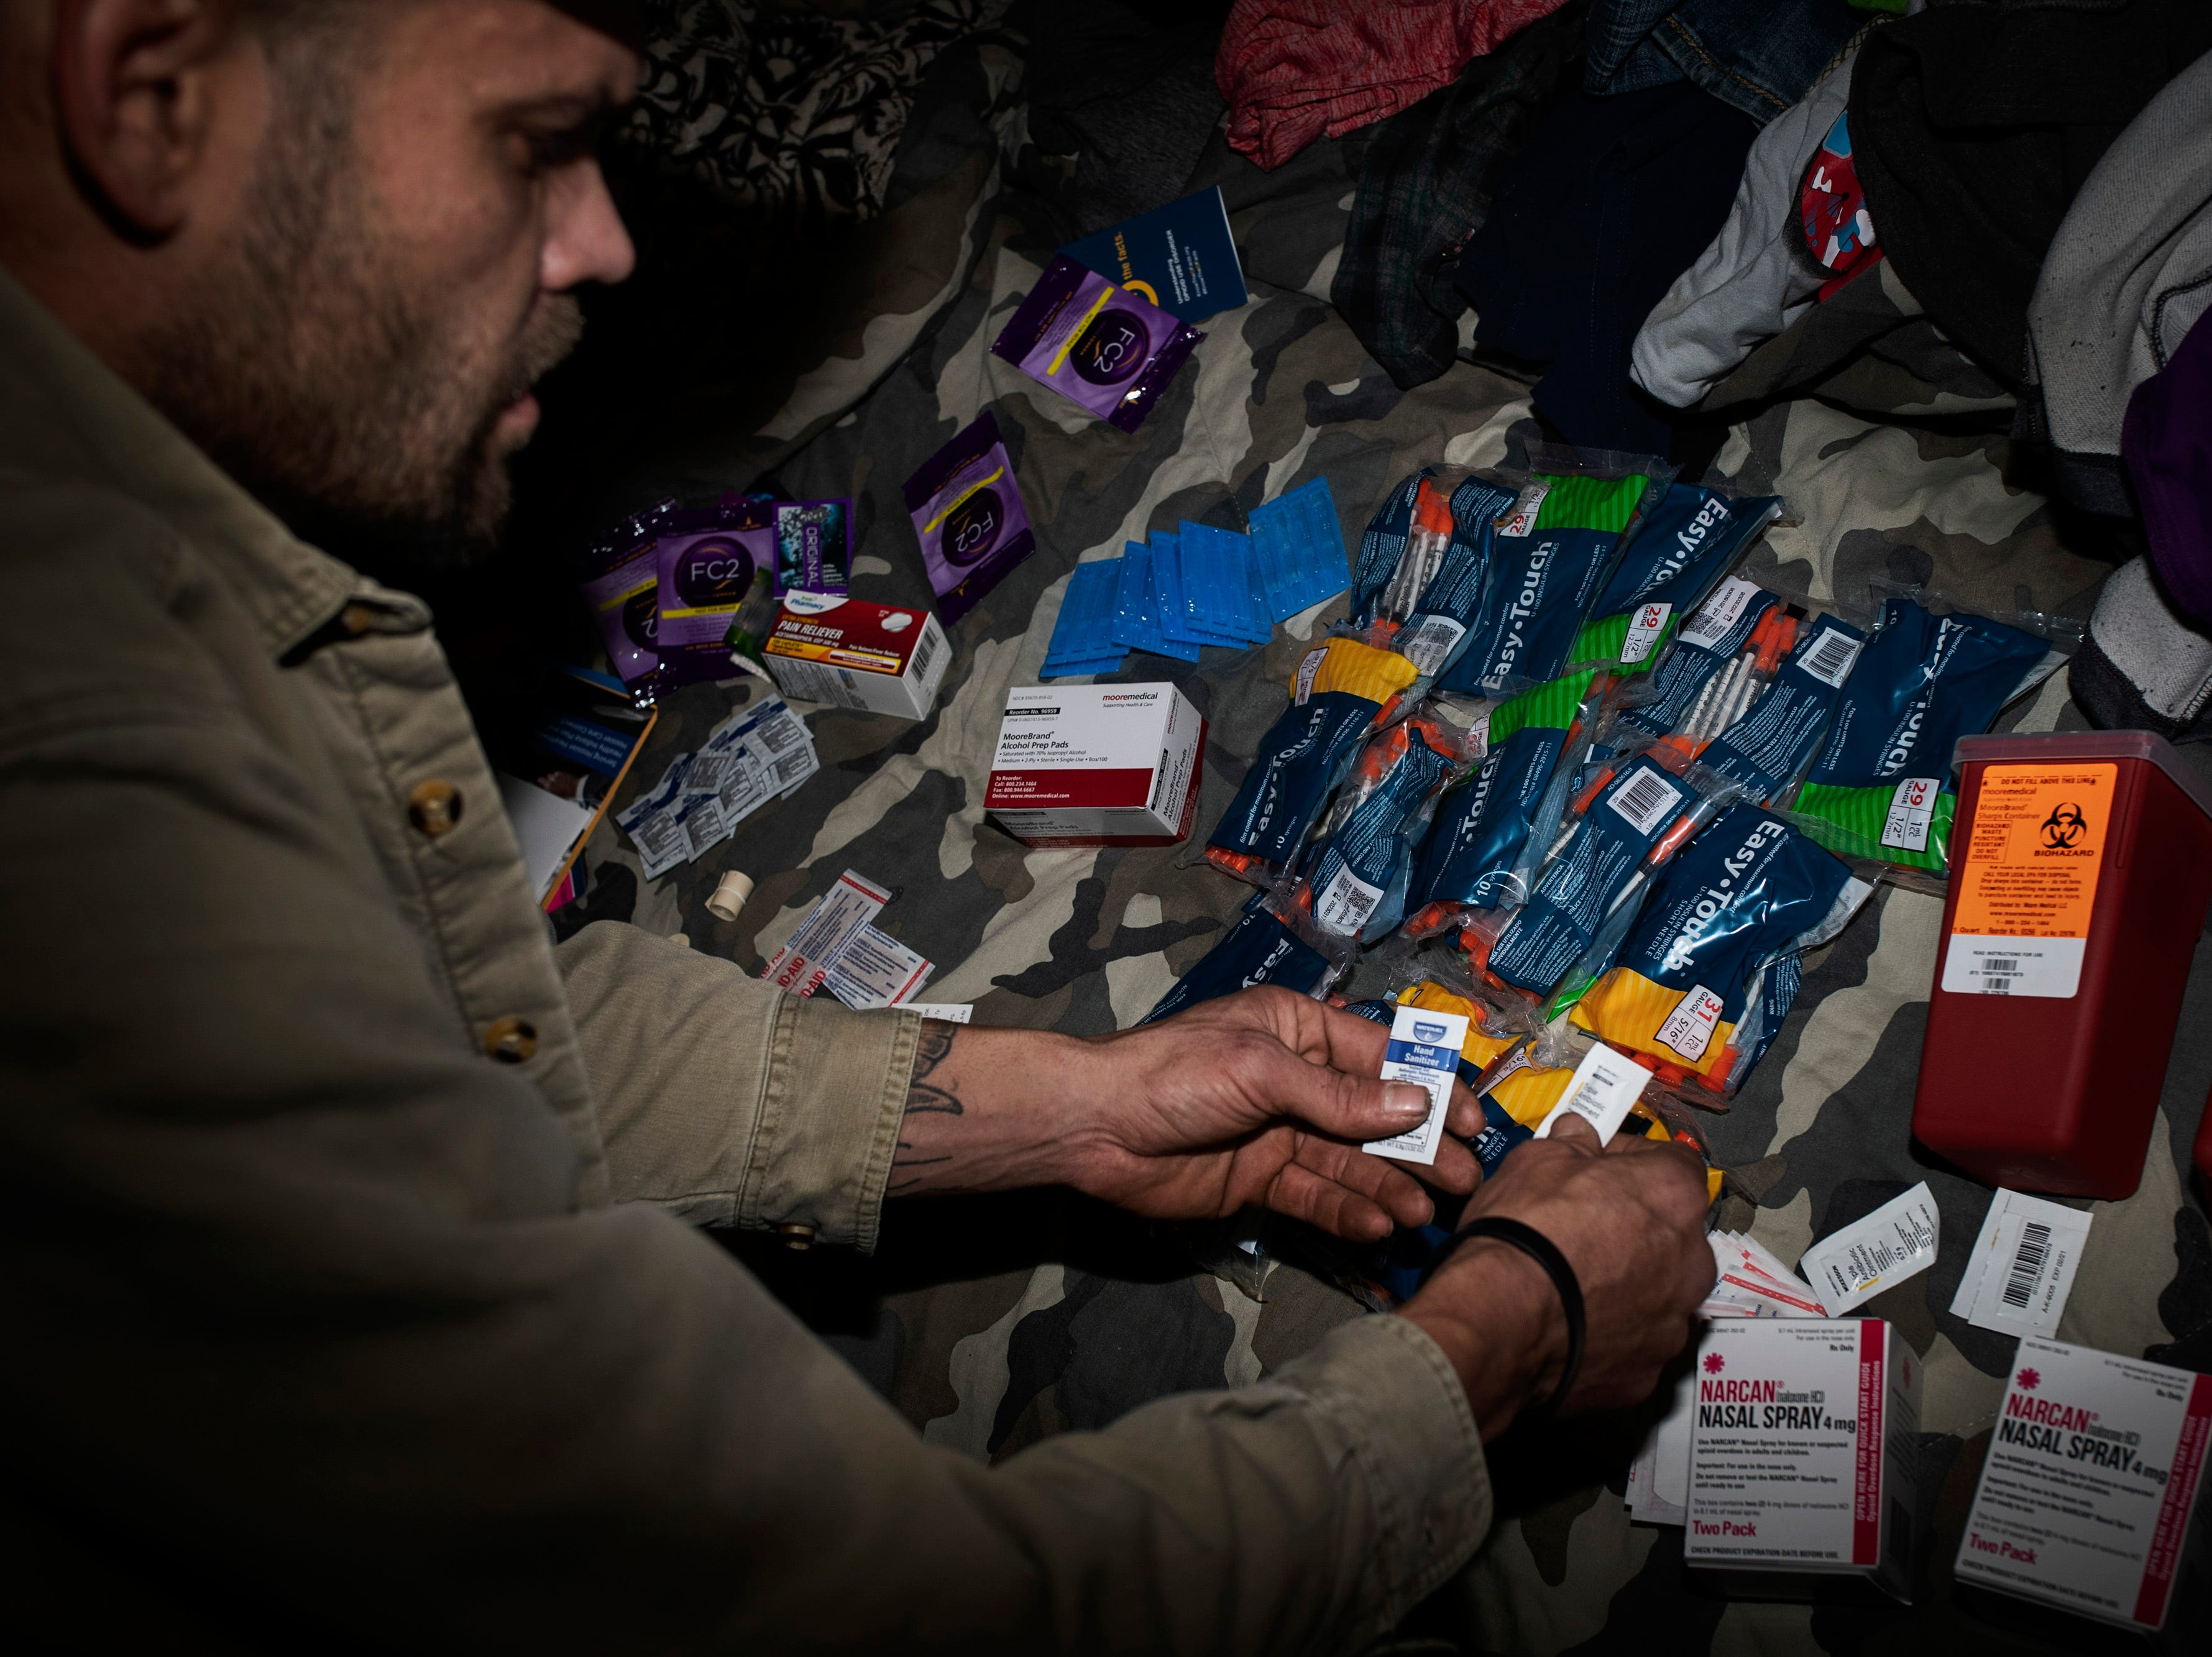 "Austin resident Matt Hensley goes through the supplies that he received from the Scott County Syringe Service program. Hensley began using in high school and has tried to quit using meth 13 times-to-date. ""I feel like I've spent half of my life being a nobody,"" Hensley said. ""The next half is going to define me."" The week prior, Hensley lost a longtime friend to a heroin overdose. The Scott County Syringe Service has saw the overall cases of HIV level off since the initial outbreak in 2015 and hopes that it can keep intravenous users like Hensley from contracting diseases. Nov. 30, 2018"